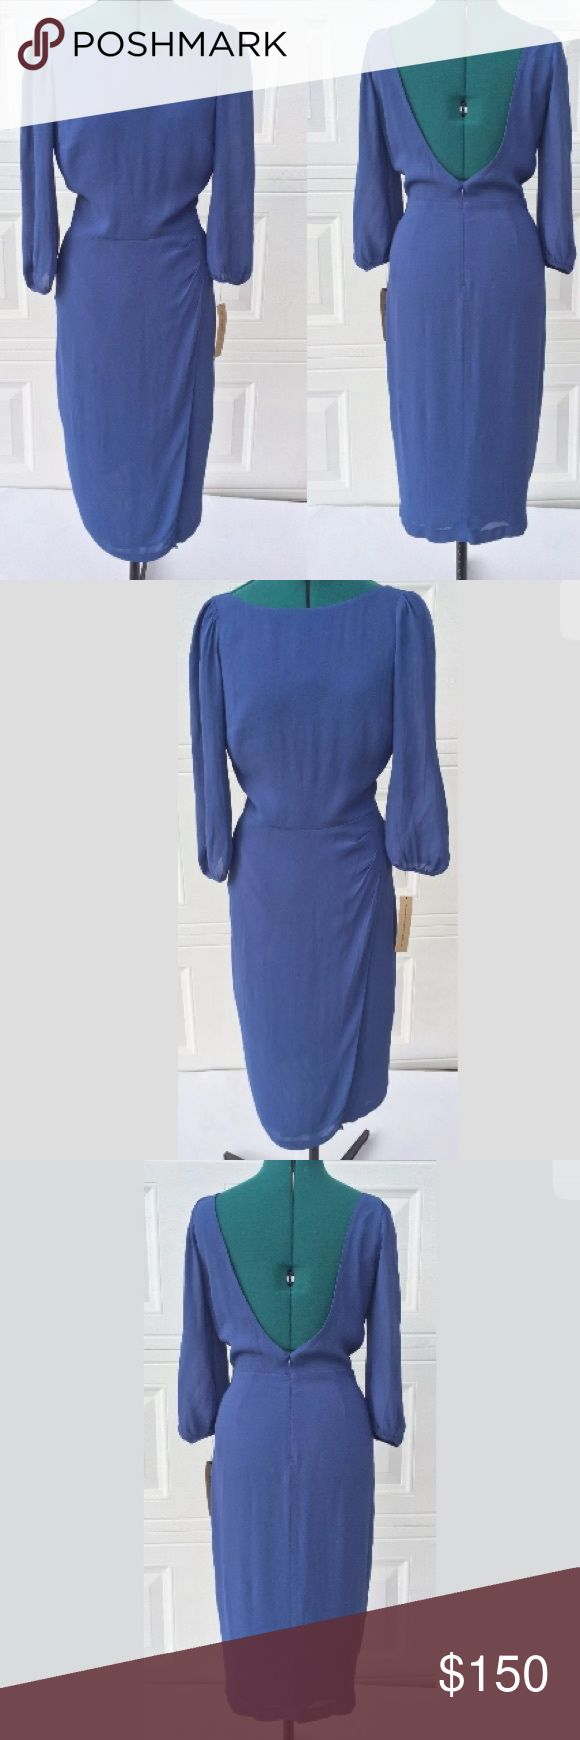 "Womens Reformation Dress Sz 6 Blue Lo Back NO TRADES🎀🎀🎀PRICE FIRM, Anything Less Than Asing Price Will Be Ignored Measured Flat • 42"" Long • 13"" Waist • 16"" Chest • 17"" Shoulder Reformation Dresses"